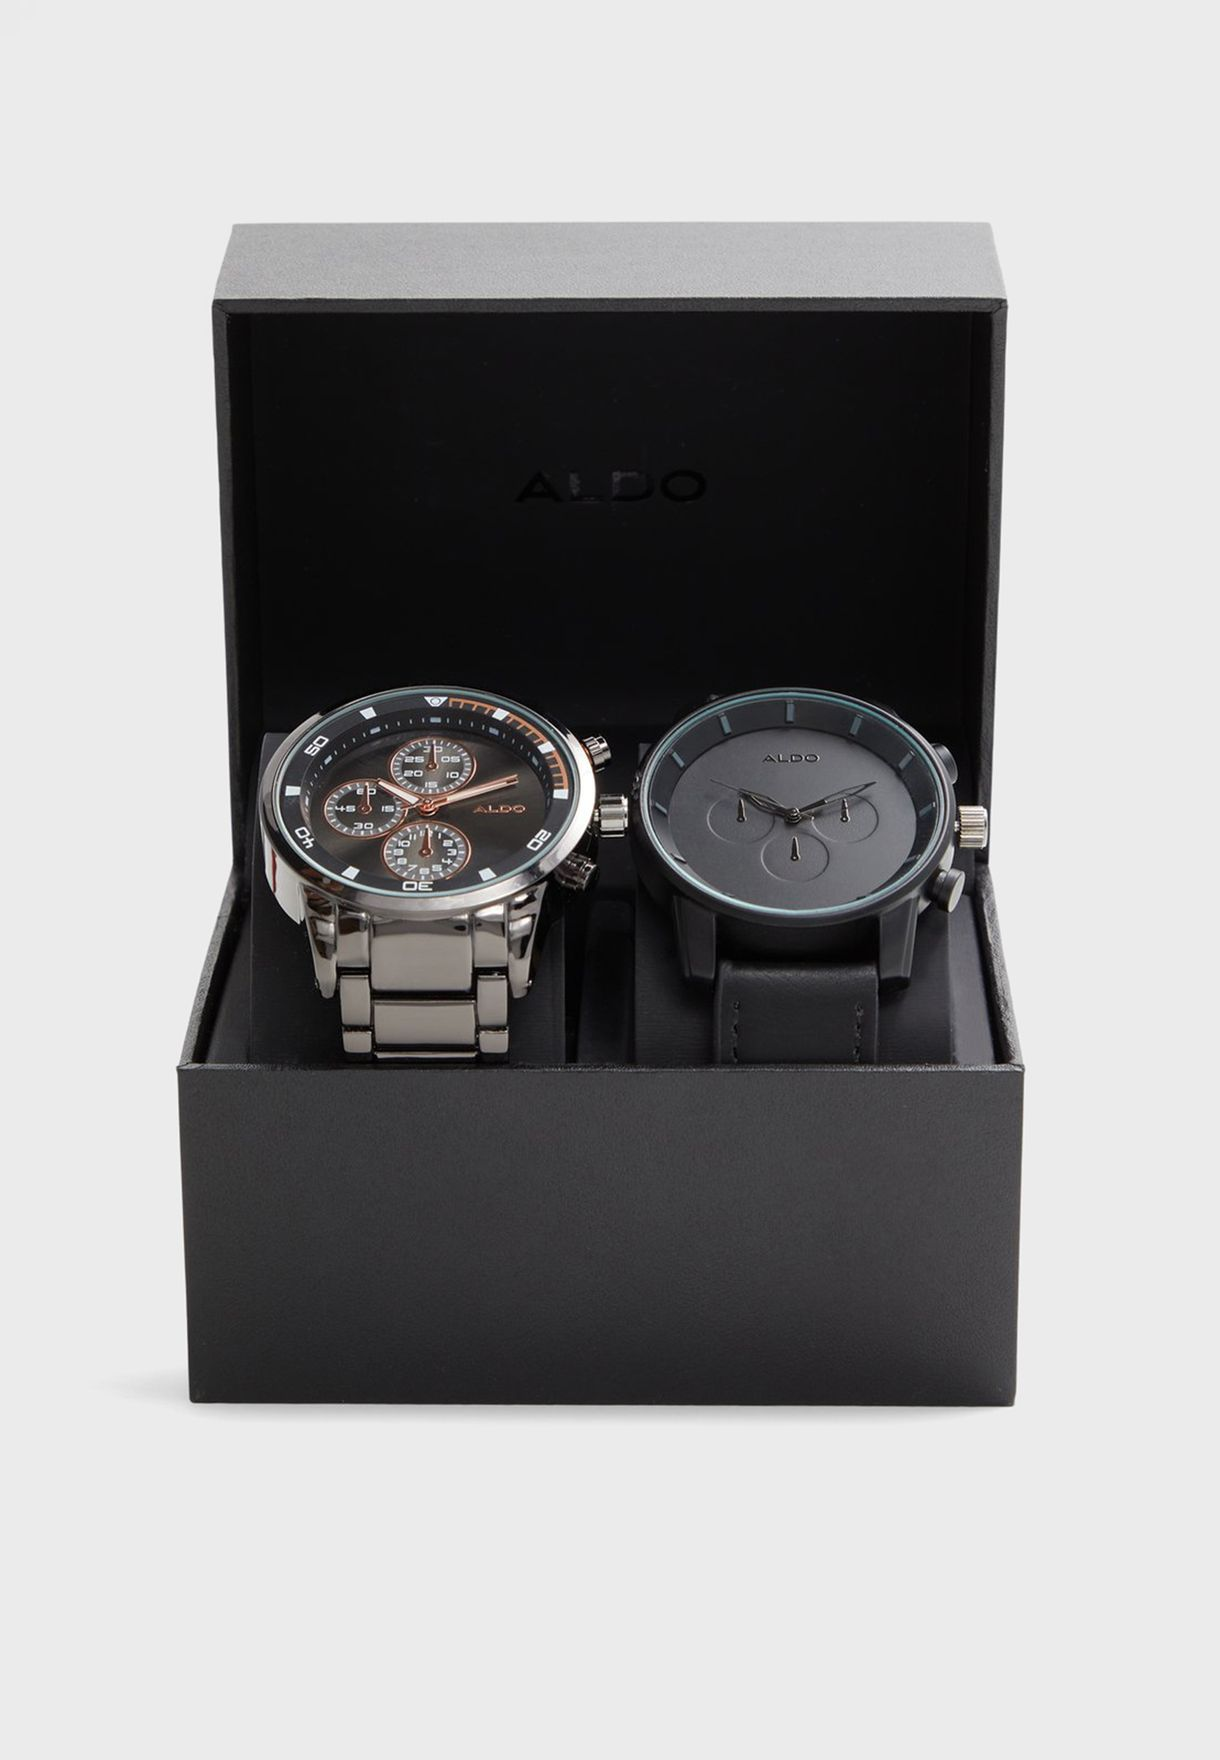 Pillinger Analog Watch